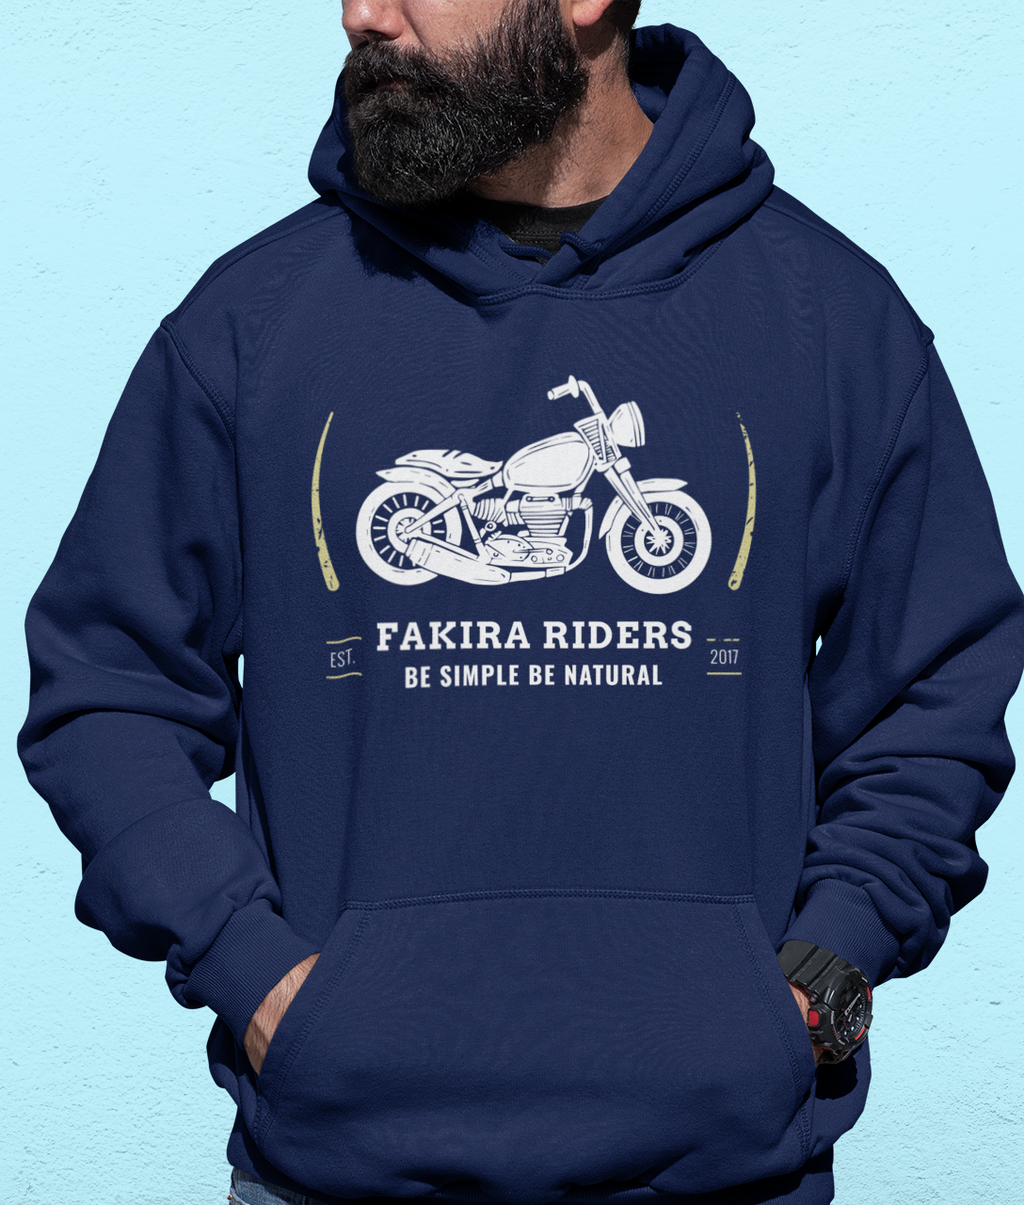 Men Full Sleeves Navy Blue Cotton Fakira Riders Hoodie Sweatshirt